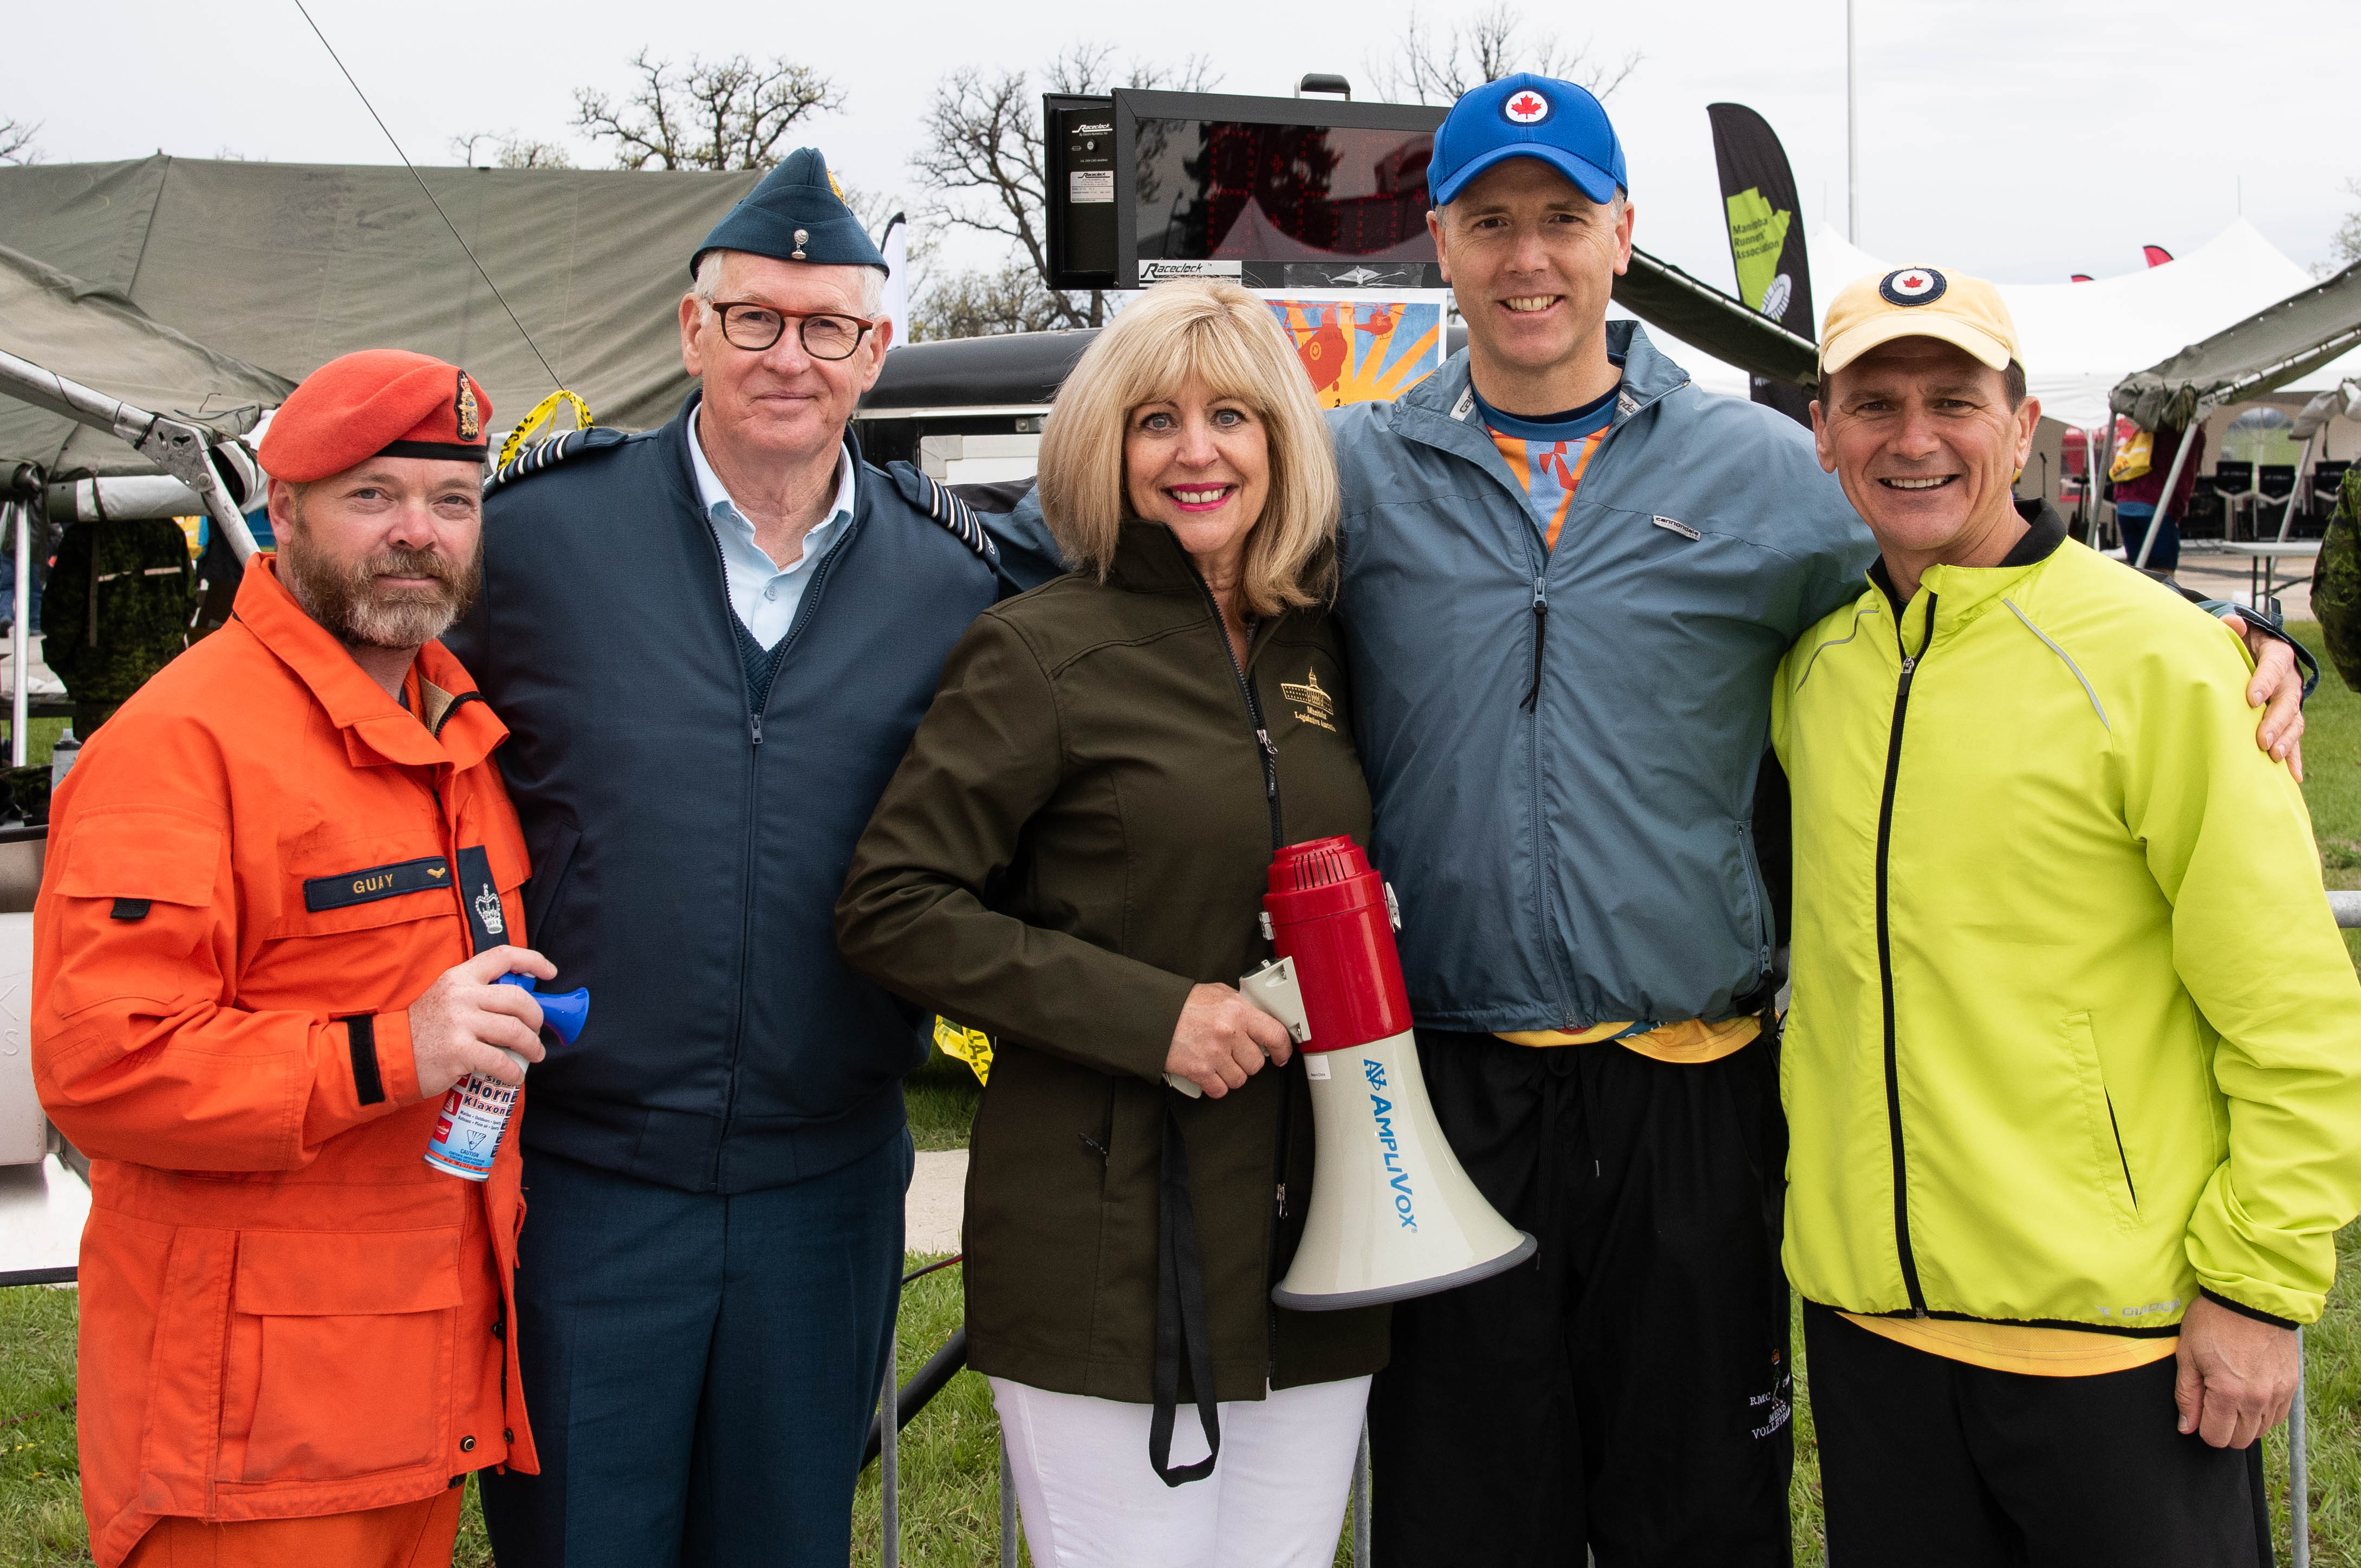 Honorary Colonel Stuart Murray, second from left, with the team starting the RCAF Run in 2019. With him are Warrant Officer Dwayne Guay, Cathy Cox, Manitoba Minister of Sport Culture and Heritage, Lieutenant General Al Meinzinger, Commander of the RCAF, and Chief Warrant Officer Denis Gaudreault, RCAF Chief Warrant Officer. PHOTO: Master Corporal Justin Ancelin